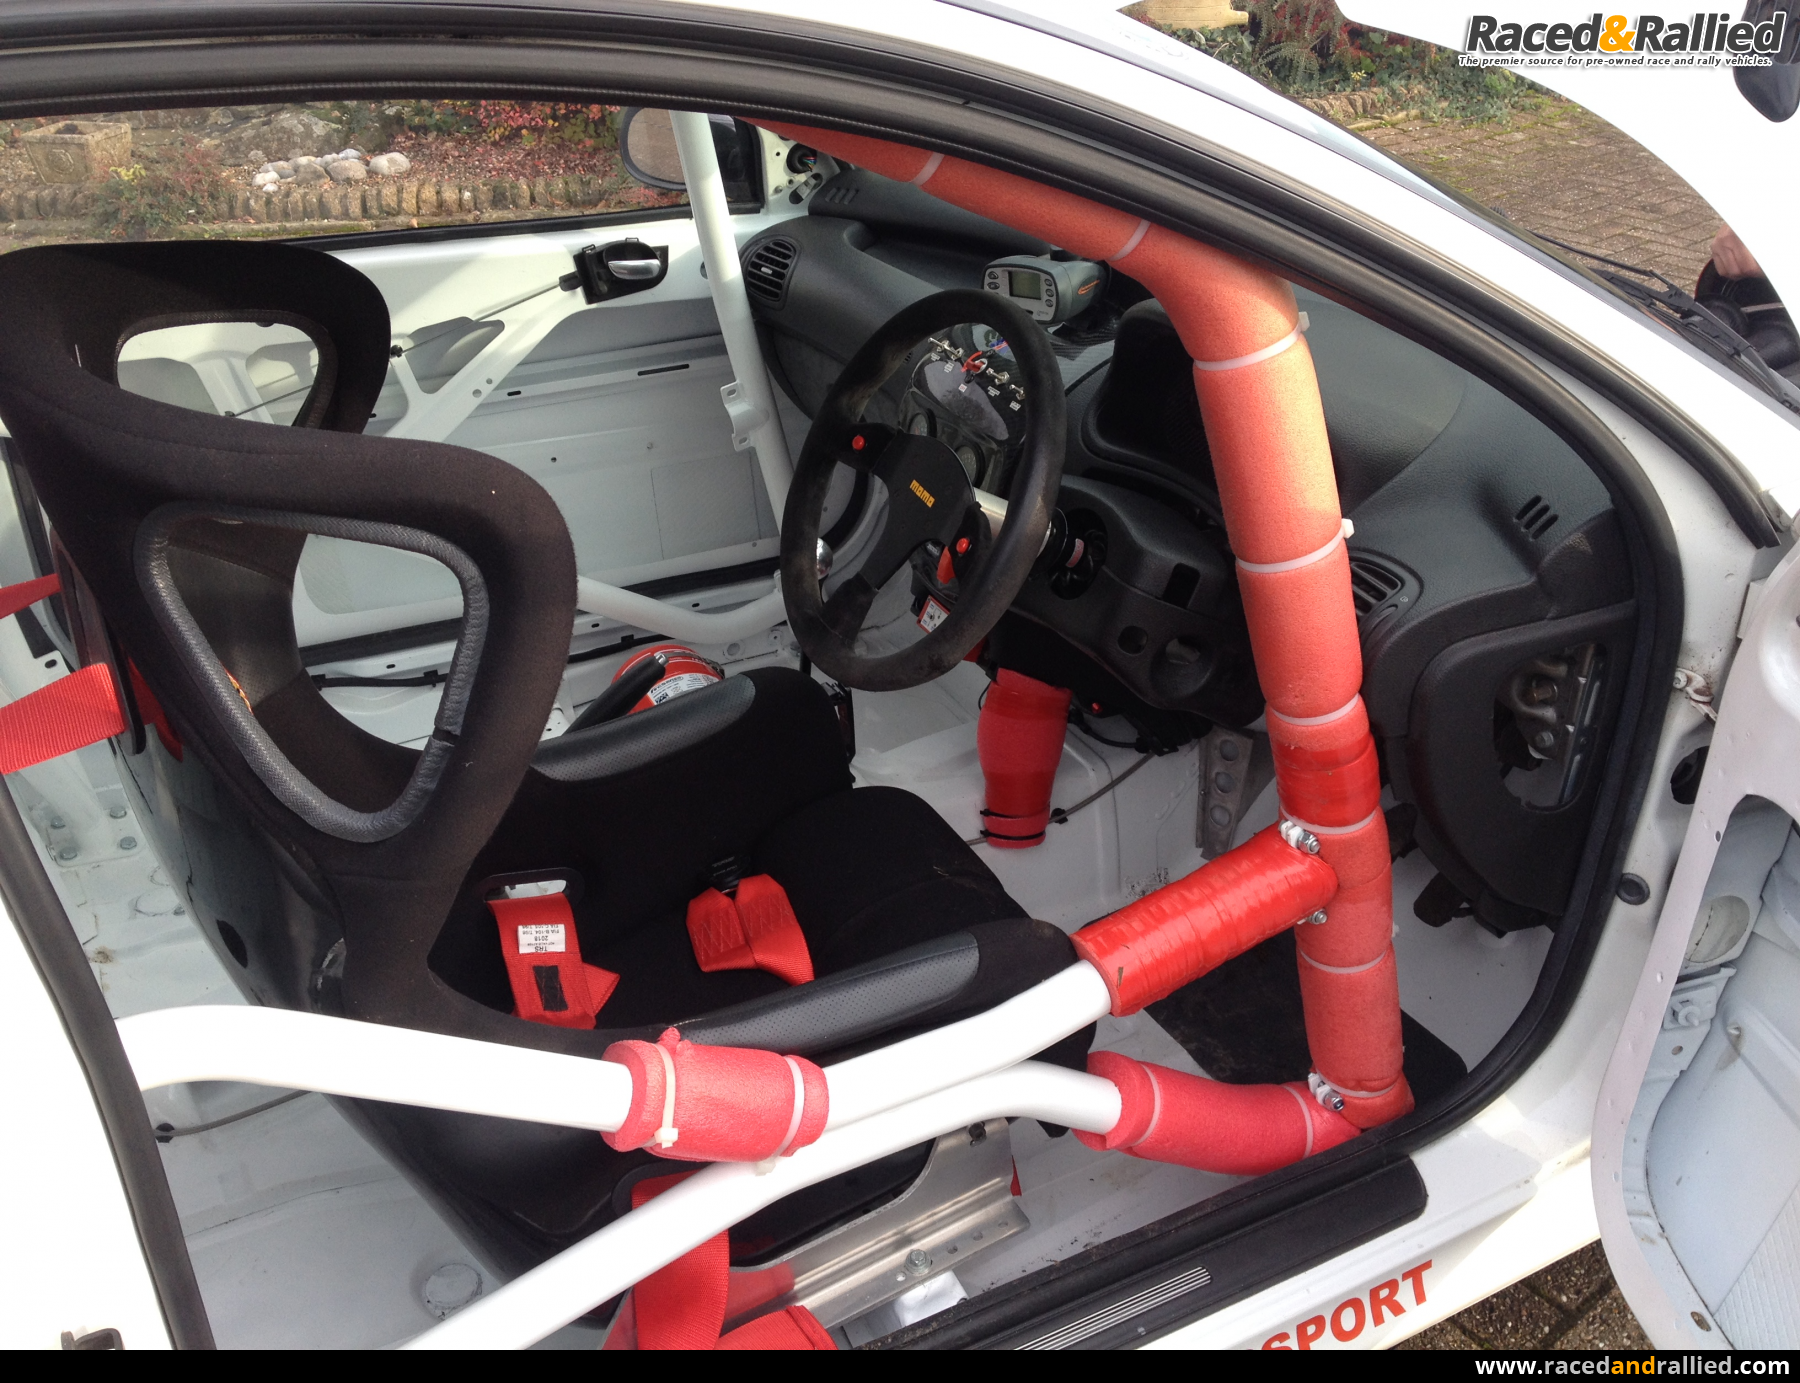 peugeot 206 race car rally sprint hillclimb track 274 bhp race cars for sale at raced. Black Bedroom Furniture Sets. Home Design Ideas